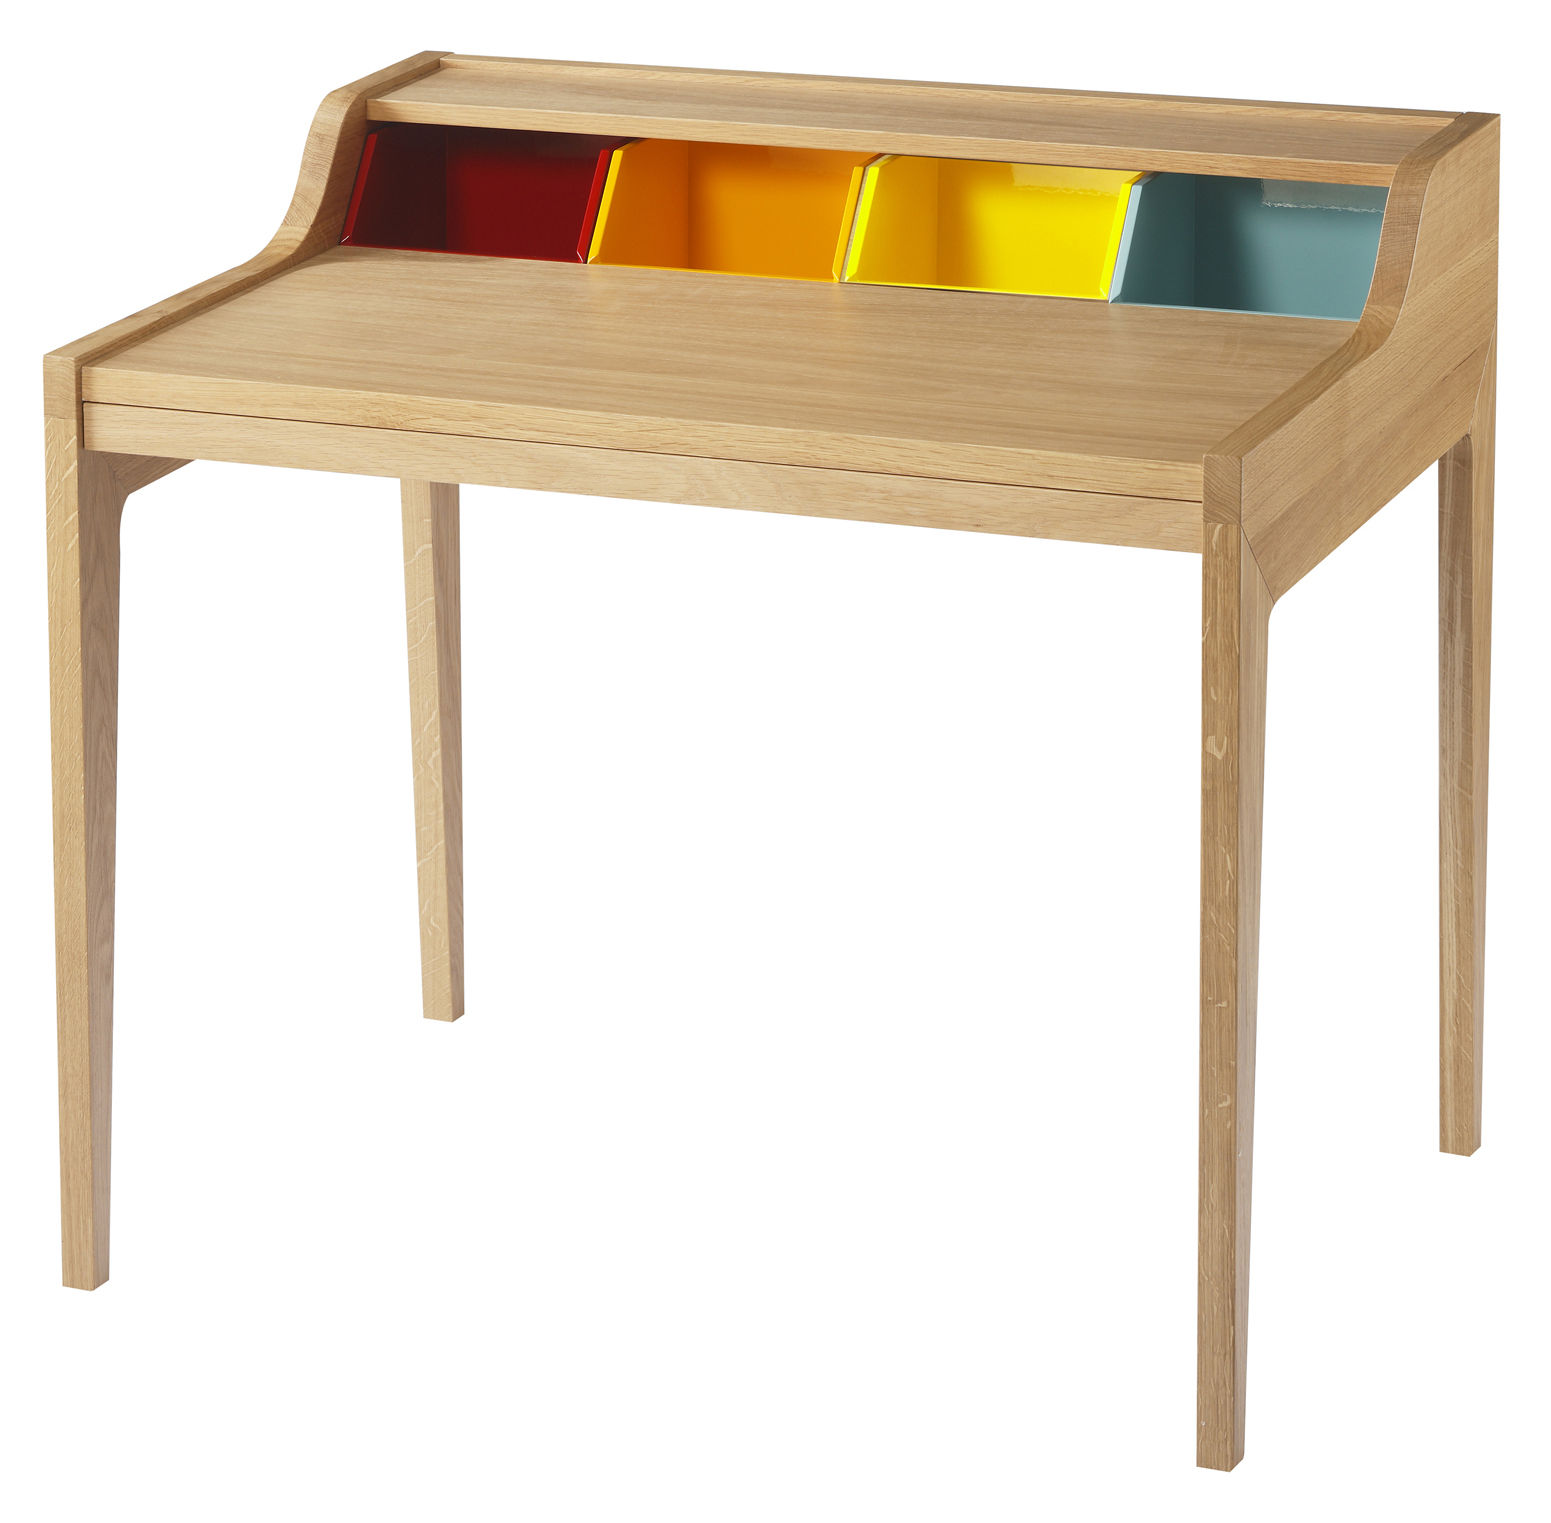 Furniture - Office Furniture - Remix Desk - The Desk by The Hansen Family - Oak - Multicoloured compartments - Solid oak